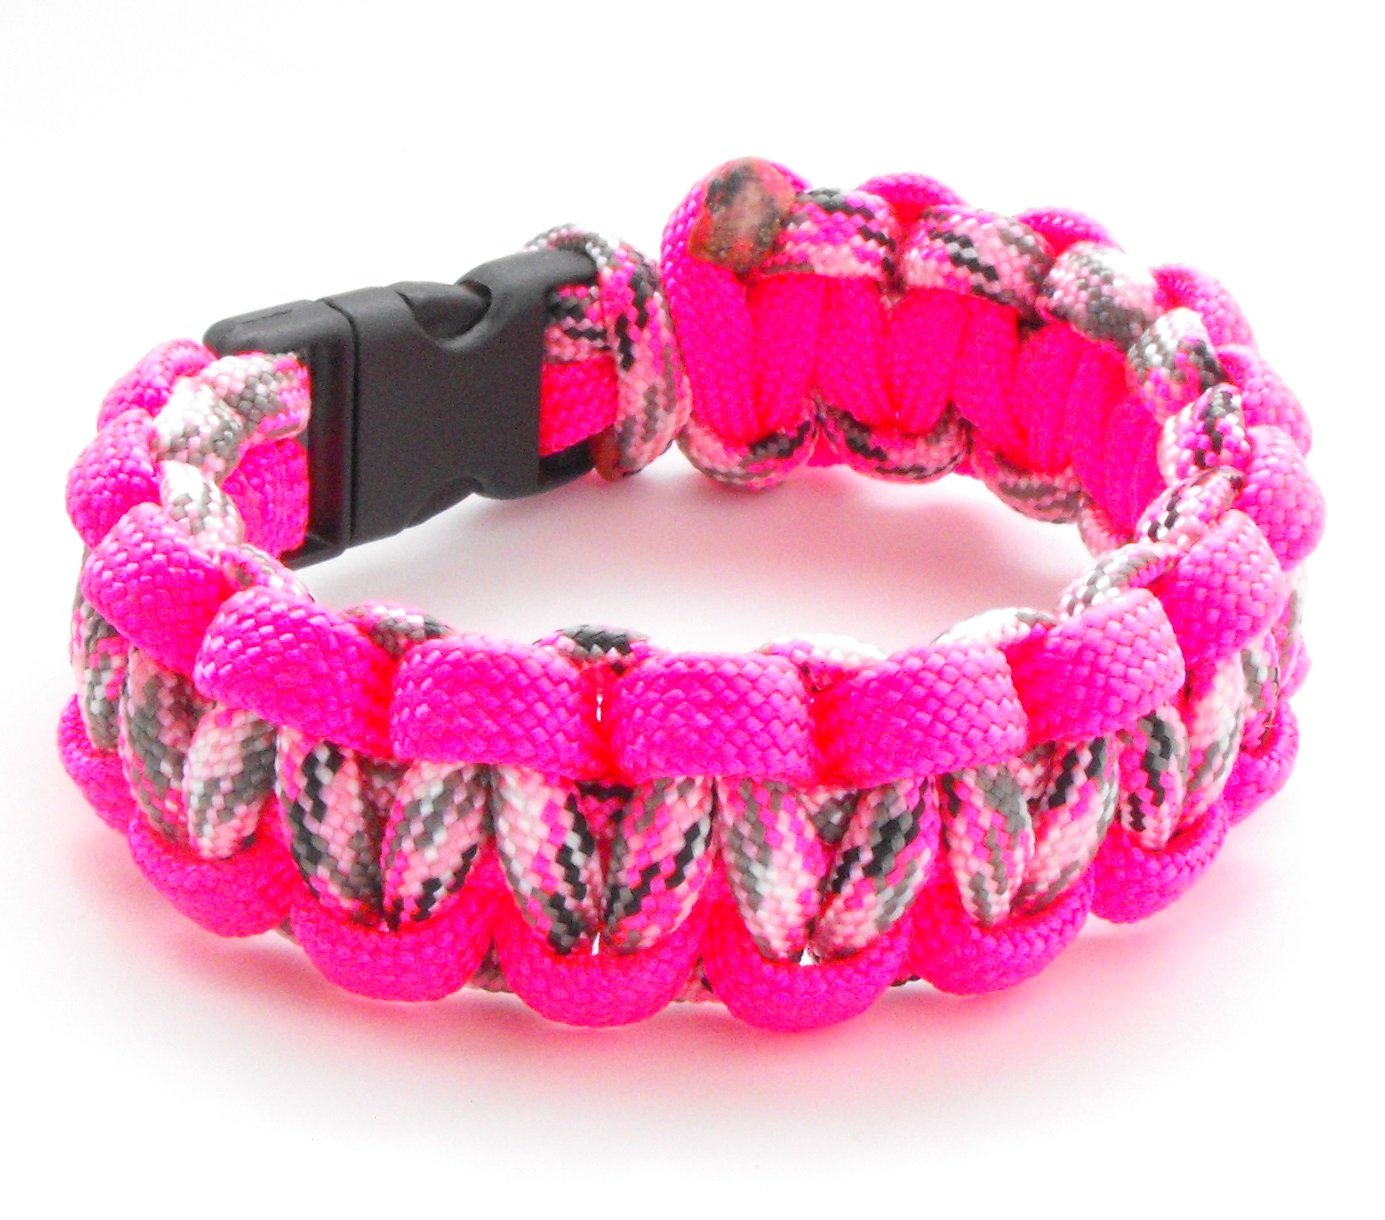 Youth 550lb Paracord Cobra Weave Bracelet With  Breakaway Plastic Buckle: Sports & Outdoors